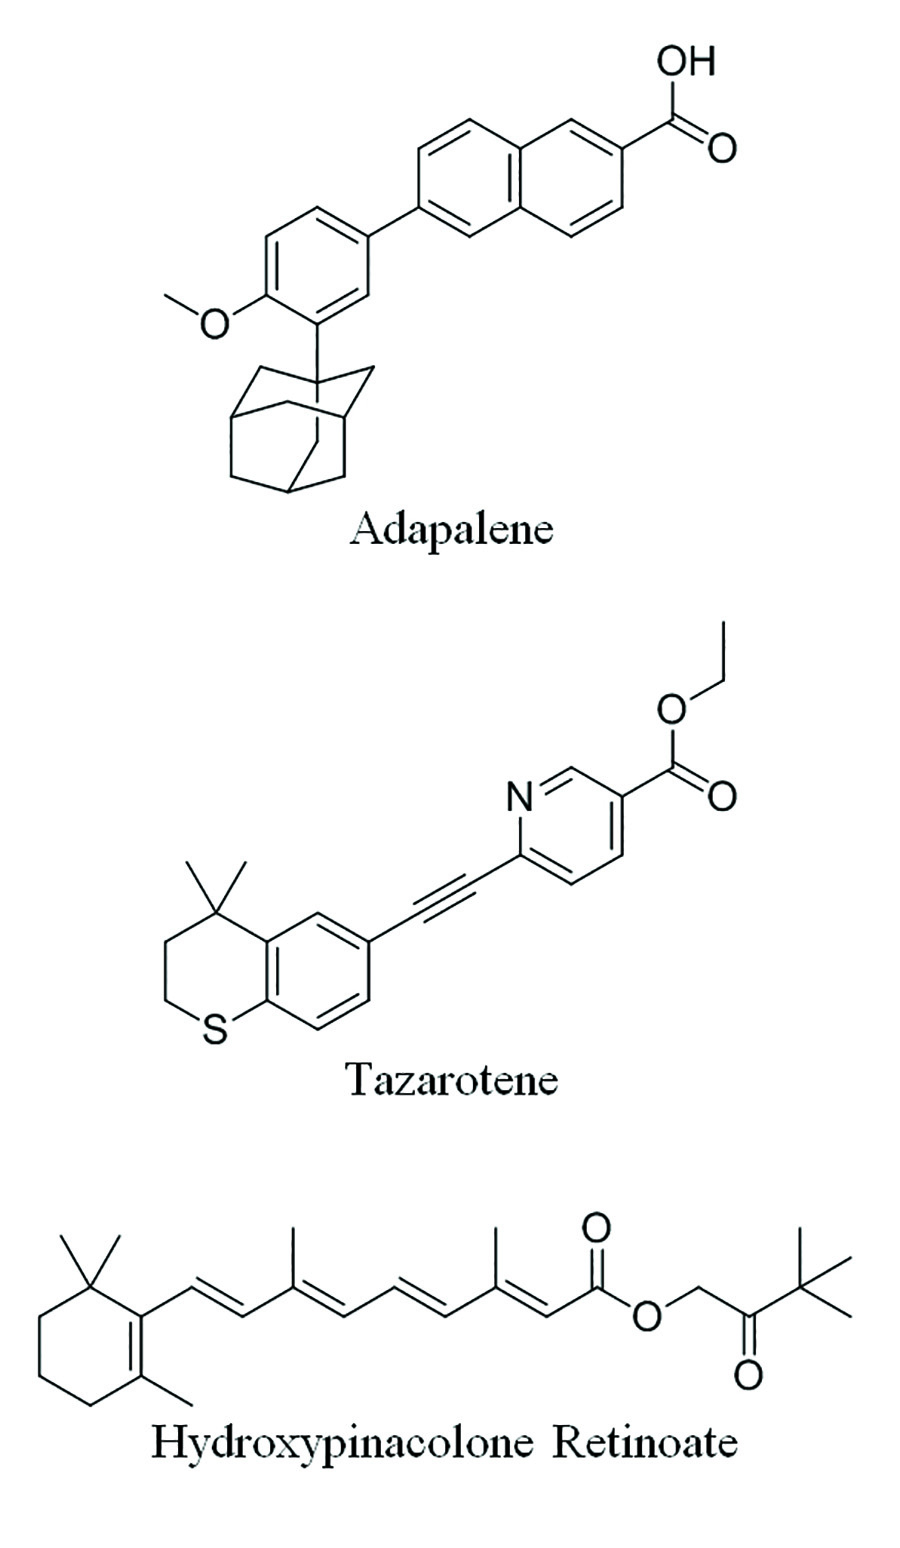 Figure 3. Synthetic retinoid derivatives that exhibit enhanced properties